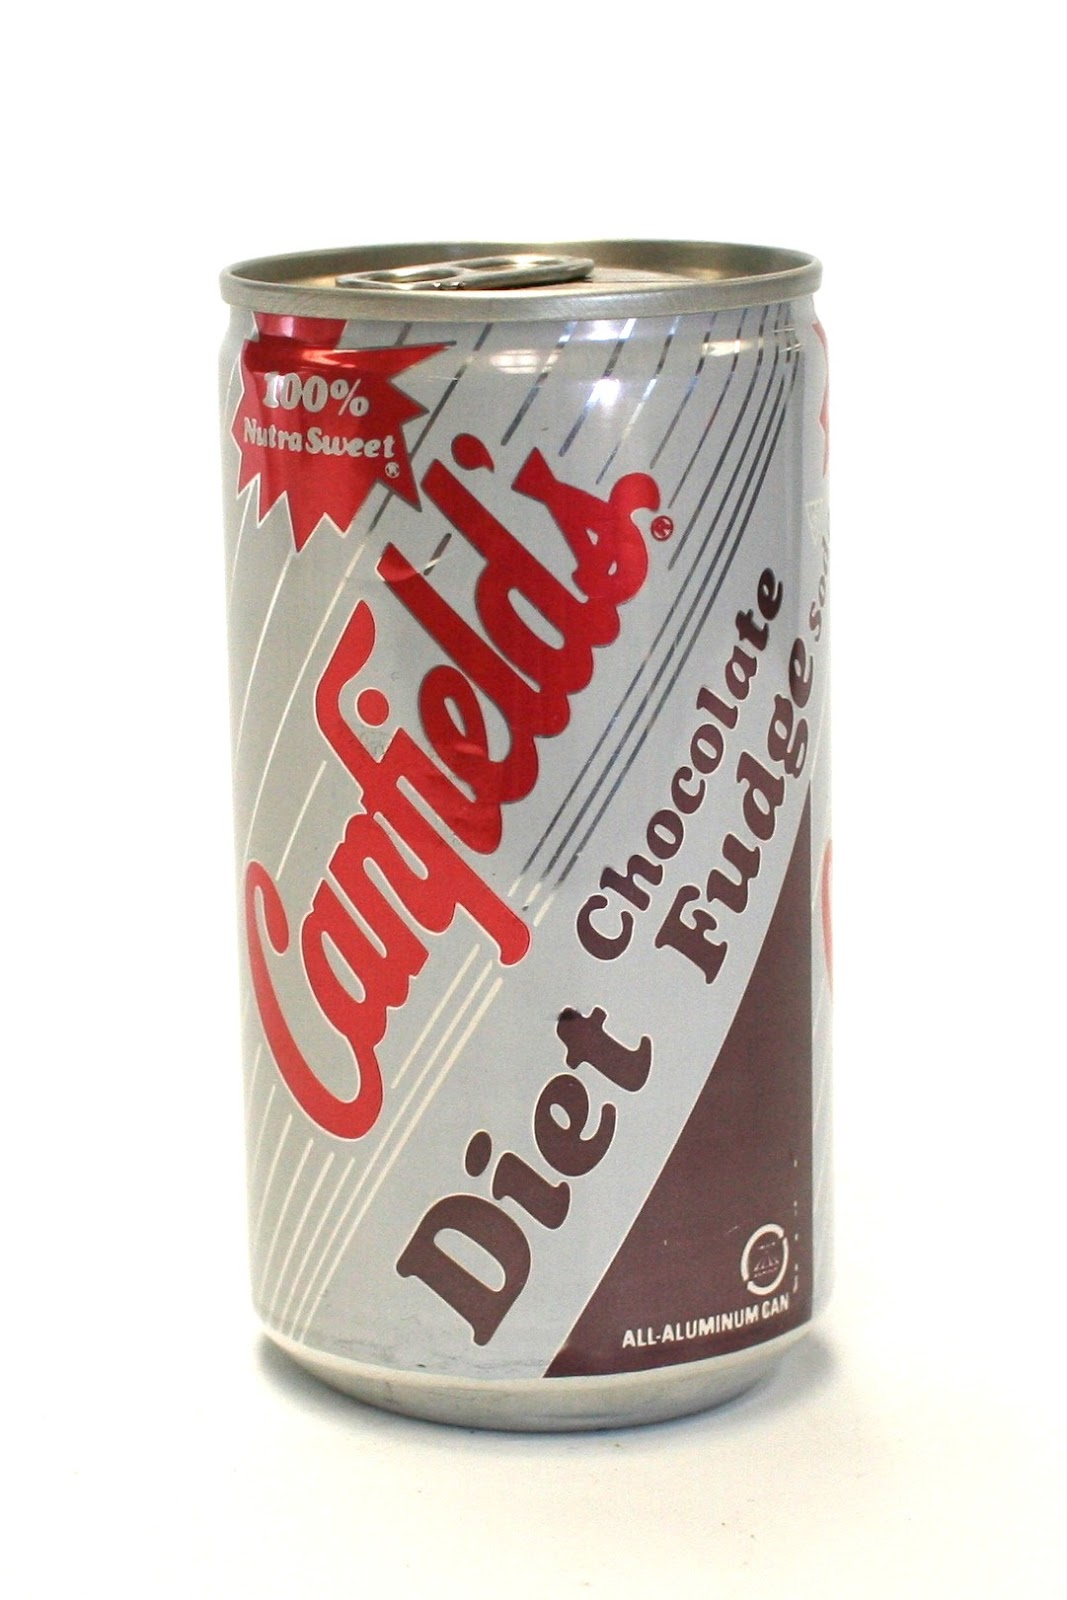 History's Dumpster: Chocolate Flavoured Soda